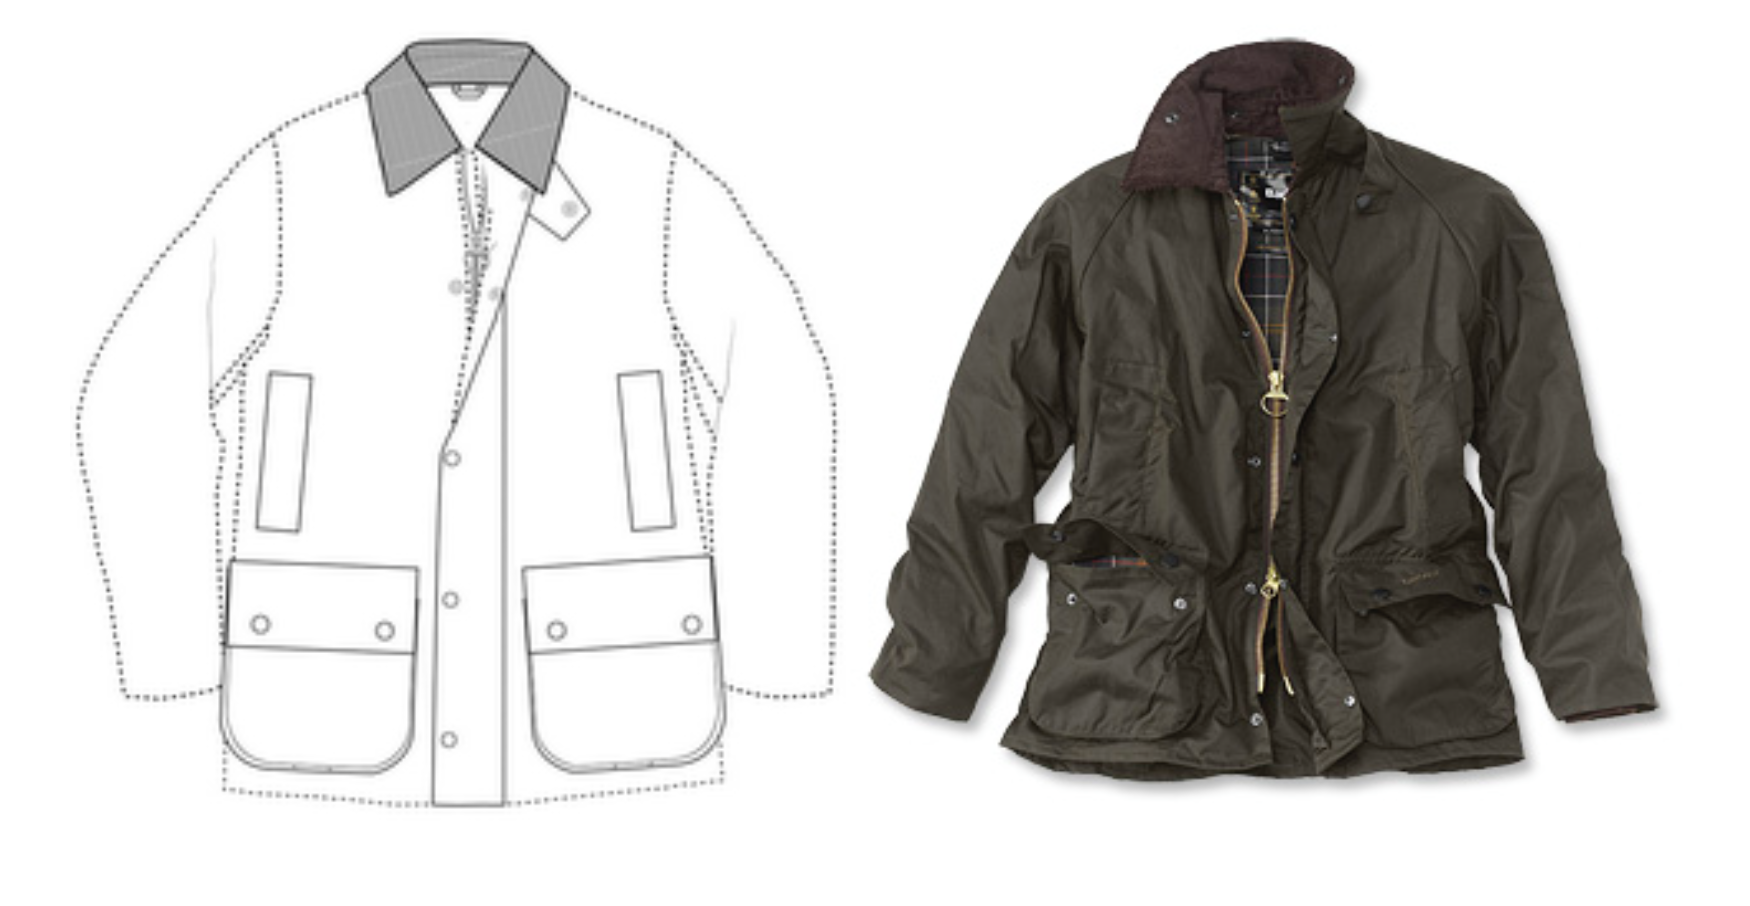 image: Barbour's Trademark drawing (left) & its Wax Jacket (right)